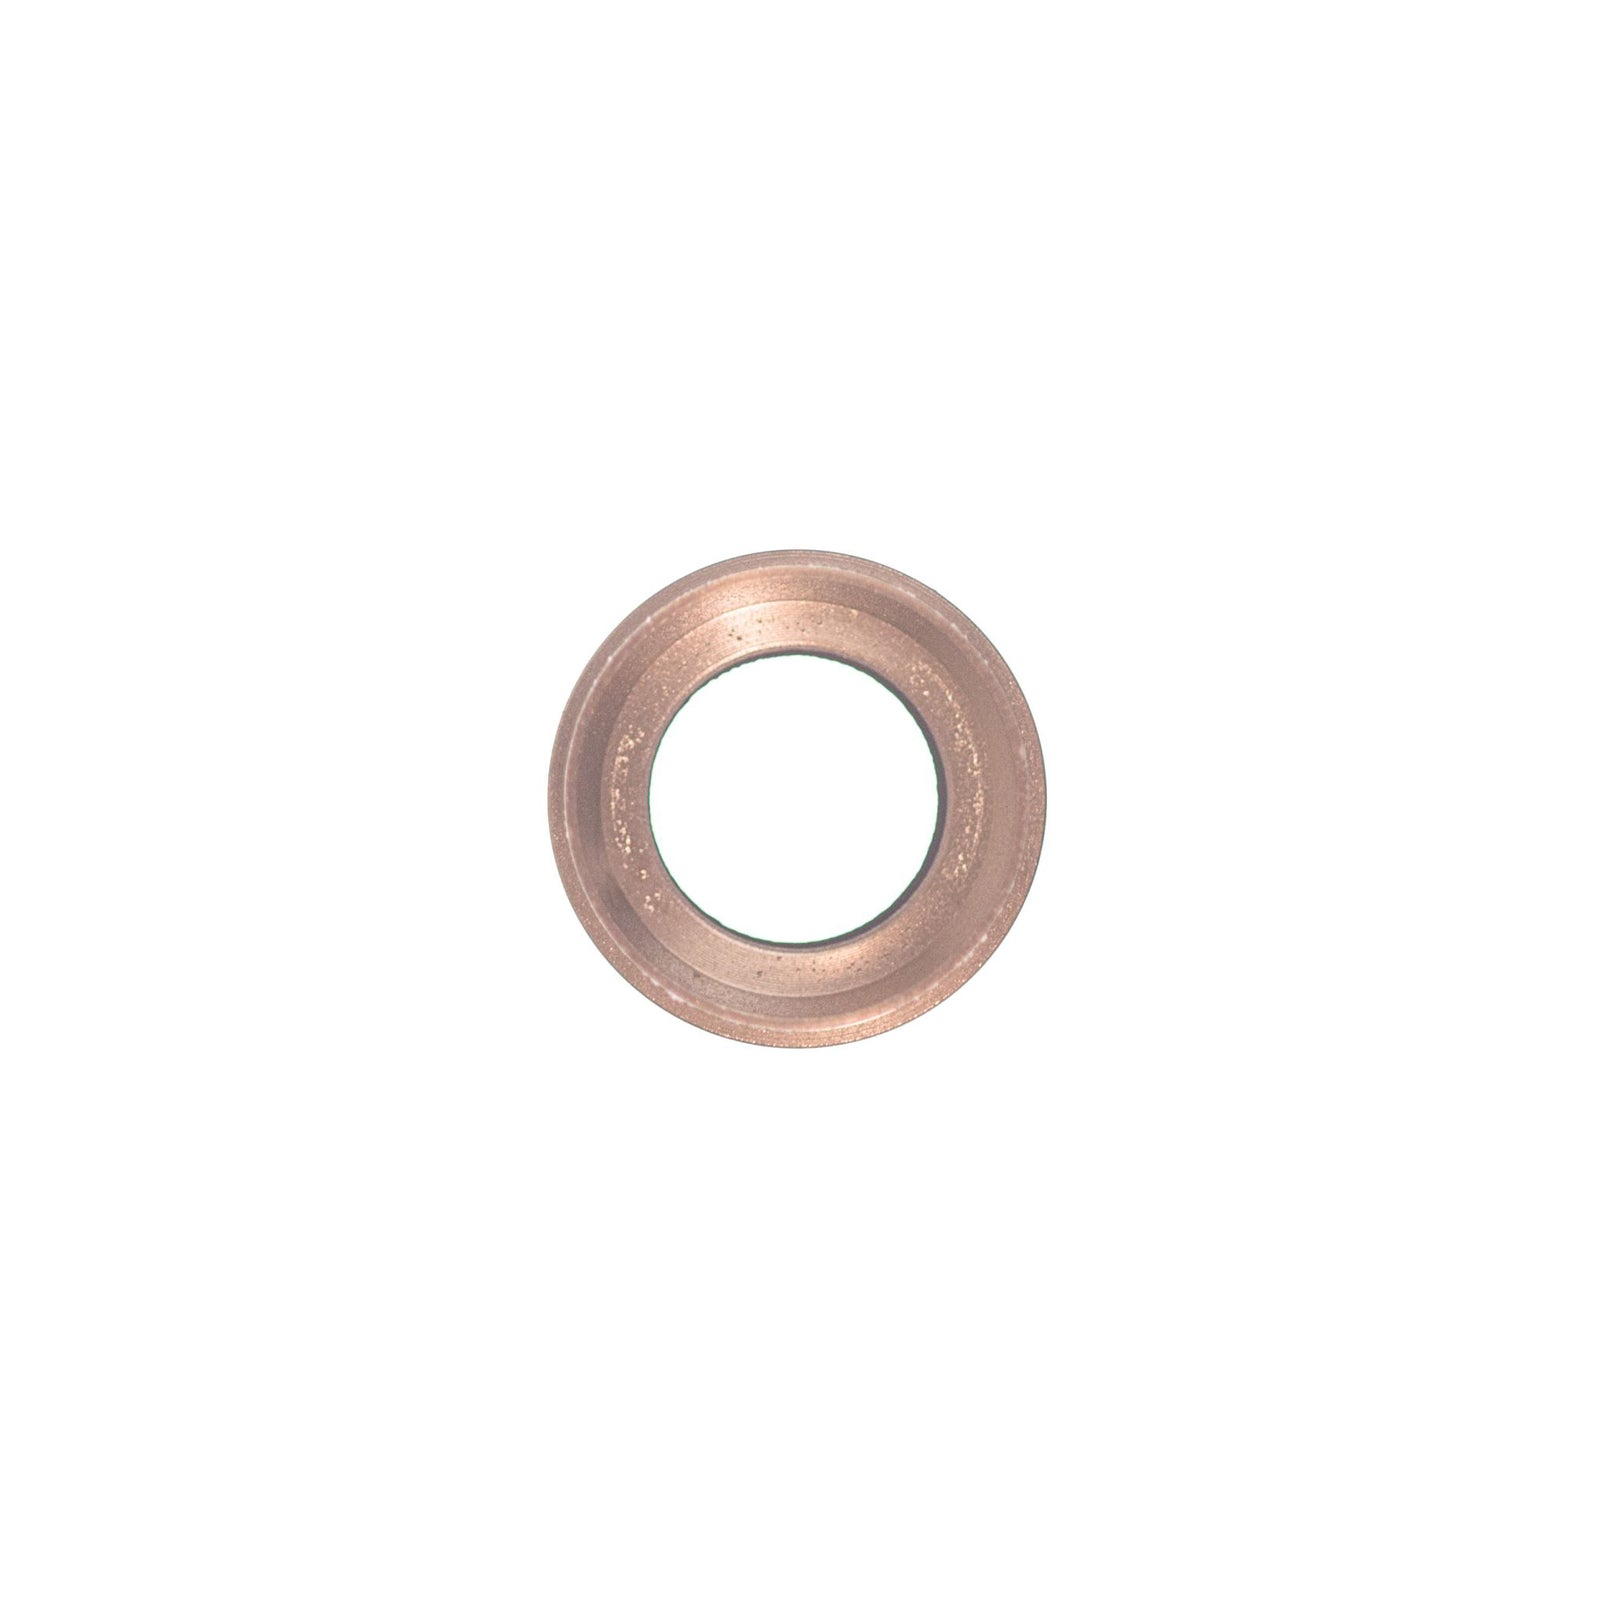 822-10167_etech_parts_iphone_6s_rose_gold_rear_camera_hold_with_lens_9278-edit_RVINWG62JFMK.jpg